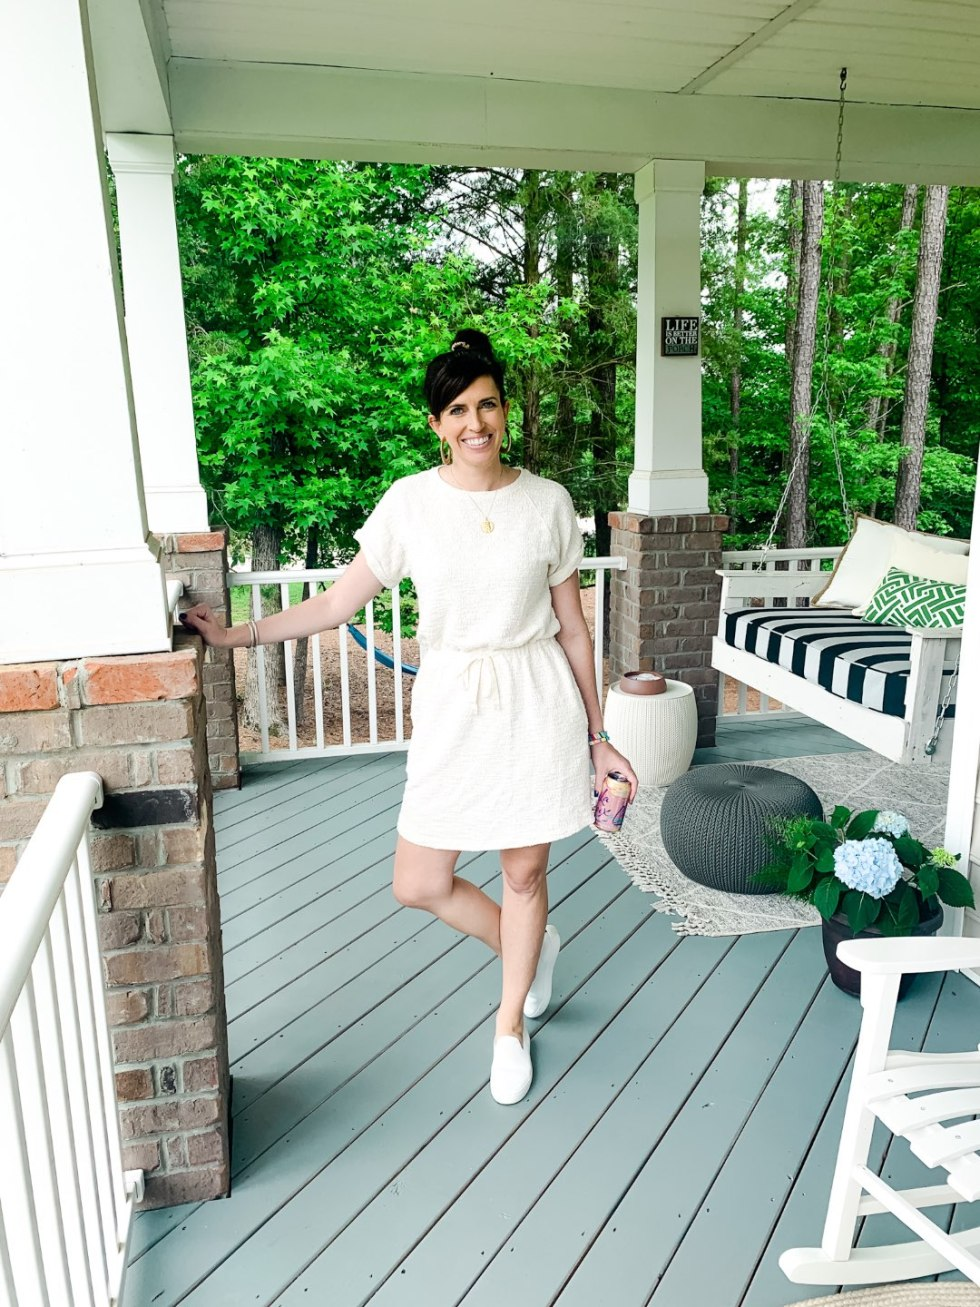 5 Stylish Teleworking Outfits for Women - I'm Fixin' To - @mbg0112 | Teleworking Outfits for Women by popular North Carolina fashion blog, I'm Fixin' To: image of a woman standing on her front porch and wearing a Loft Lou + Grey TWEEDKNIT DRAWSTRING DRESS and Rothy's shoes.